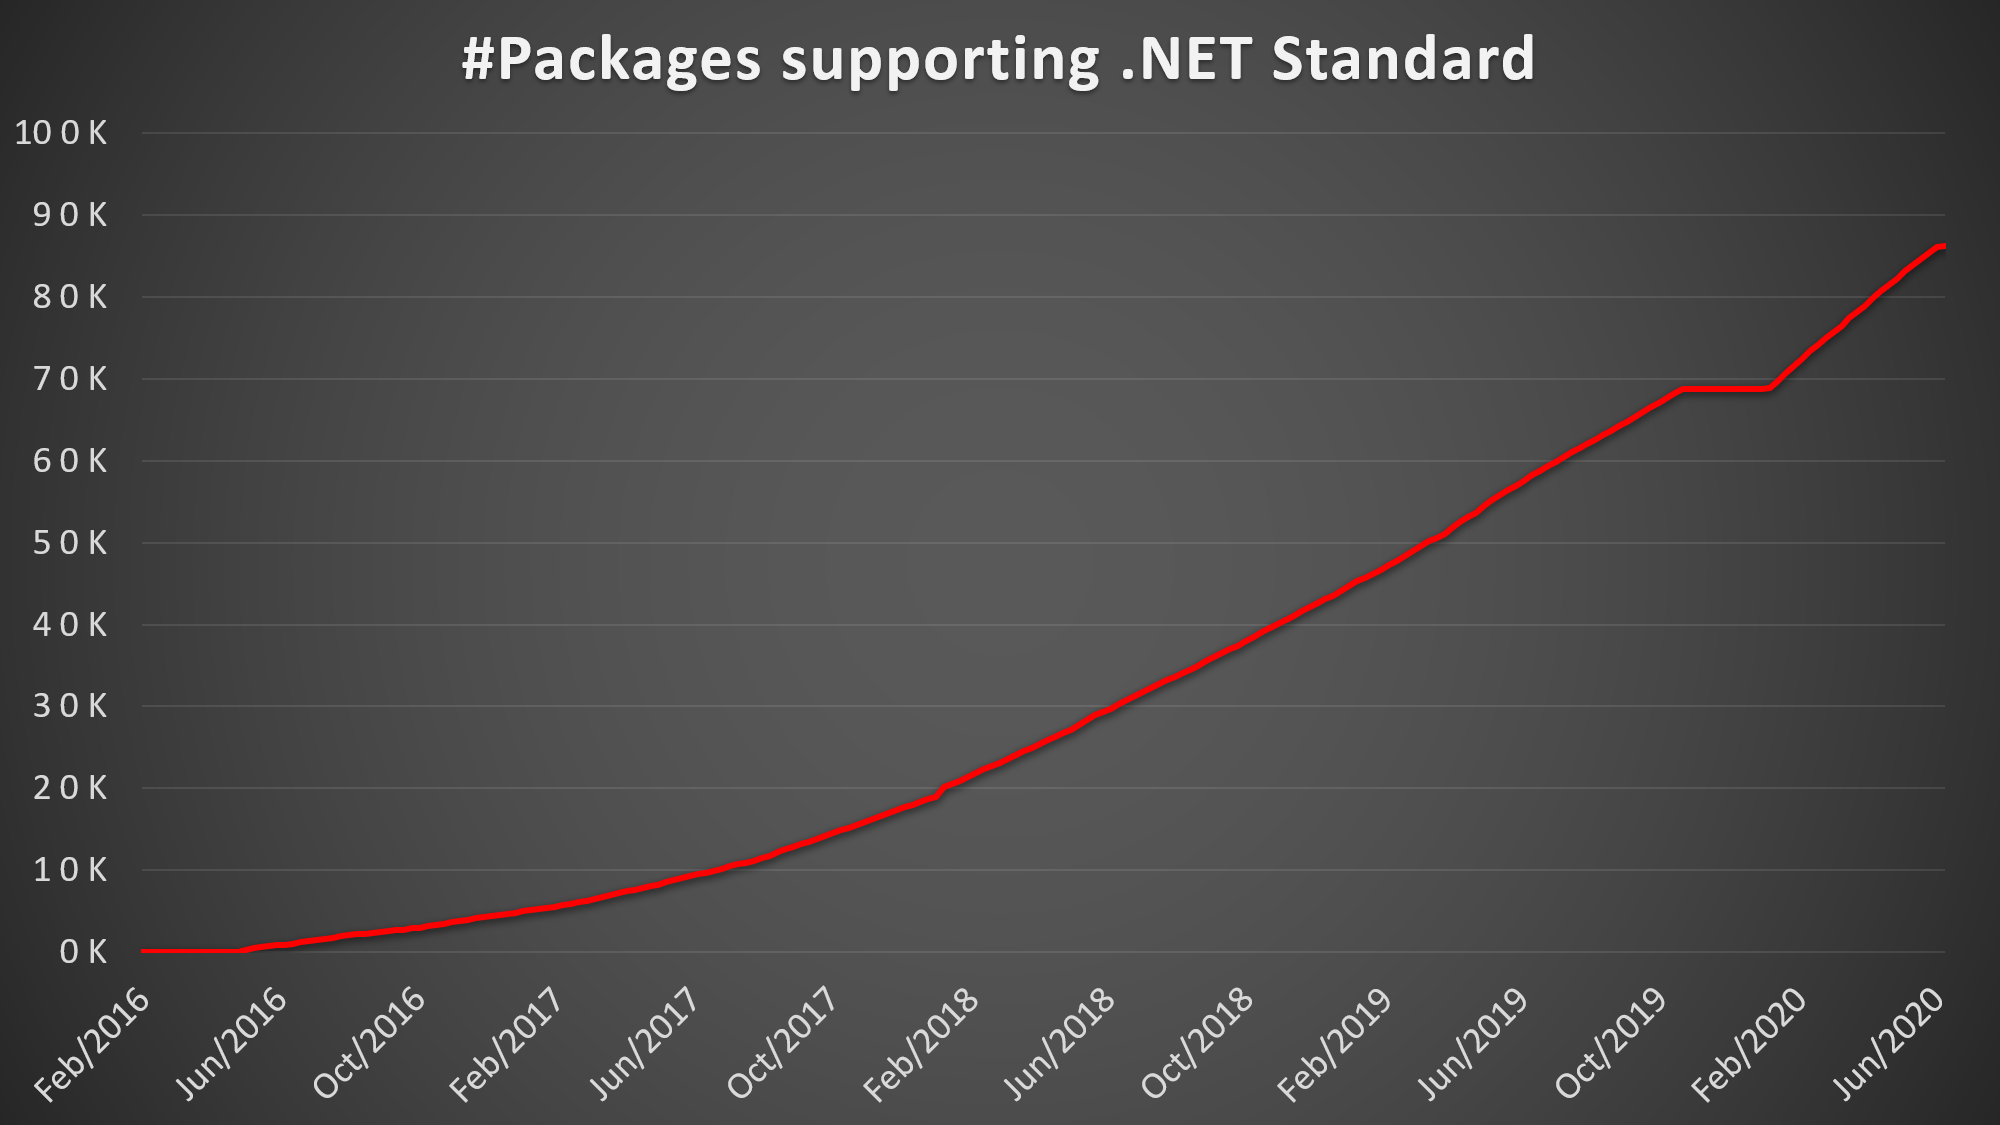 #Packages supporting .NET Standard